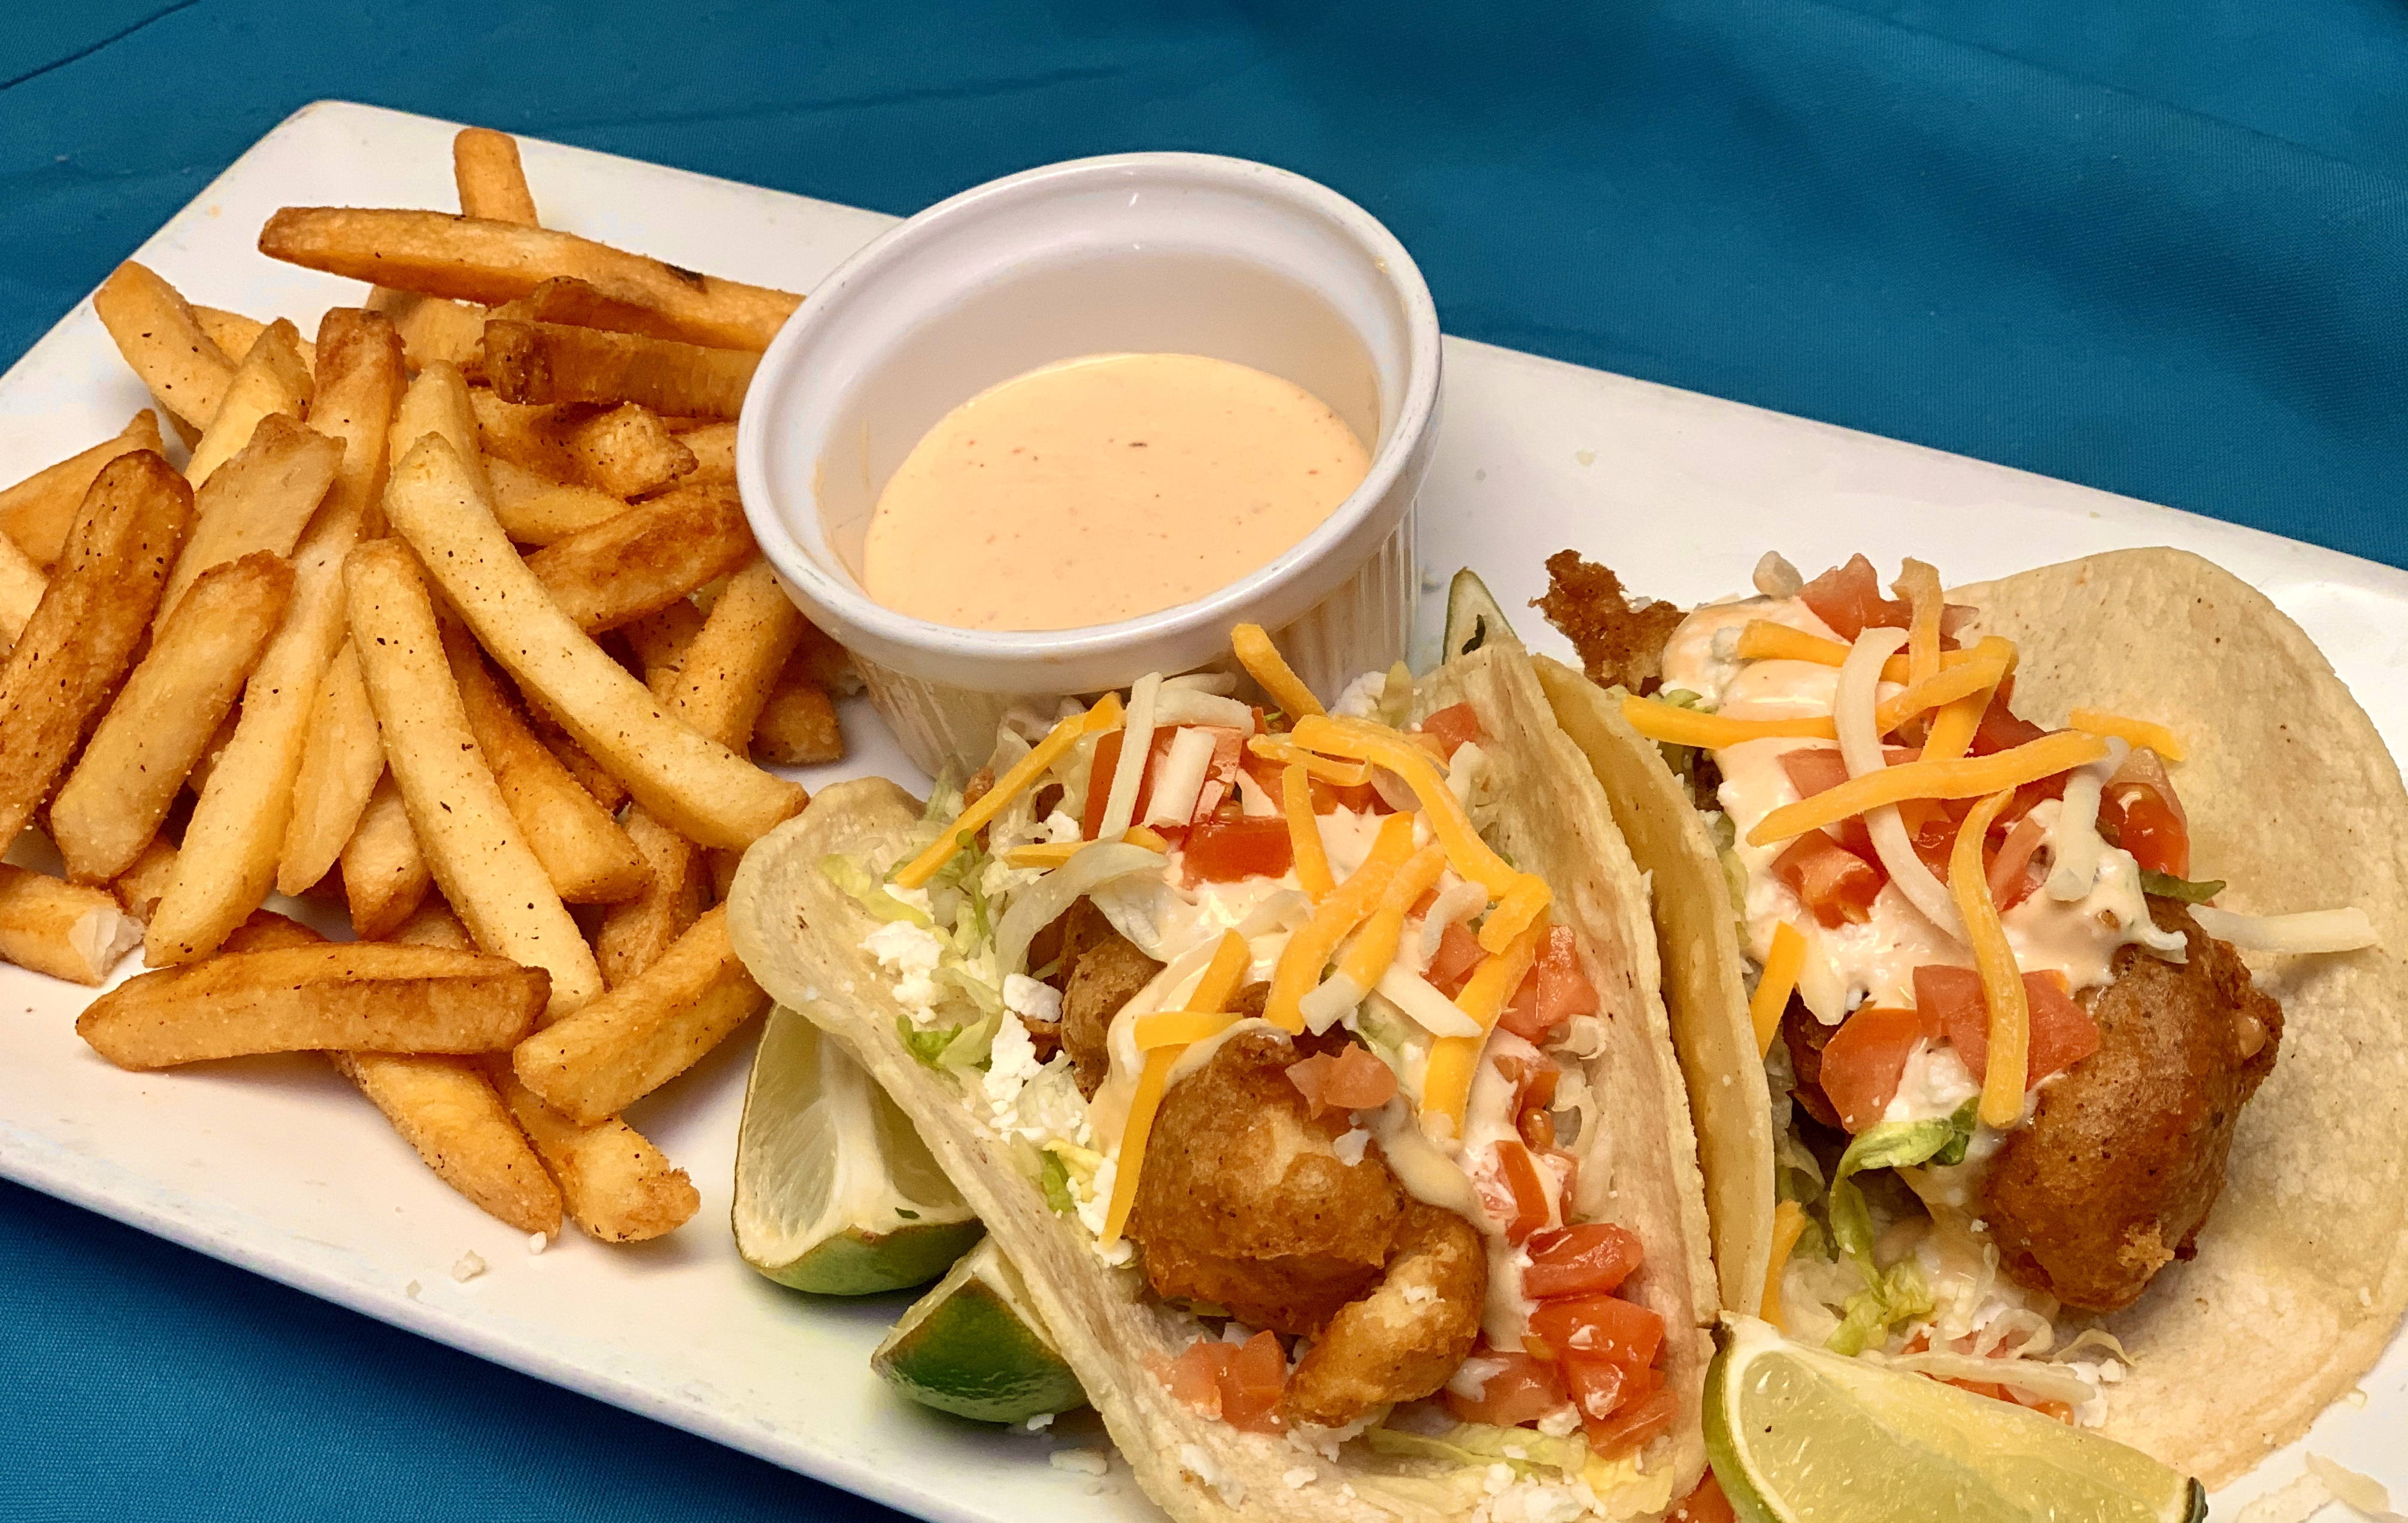 Beer Batter Fried Fish Tacos at Guadalajara Grill, Bar, & Table Side Salsa in Tucson Arizona.